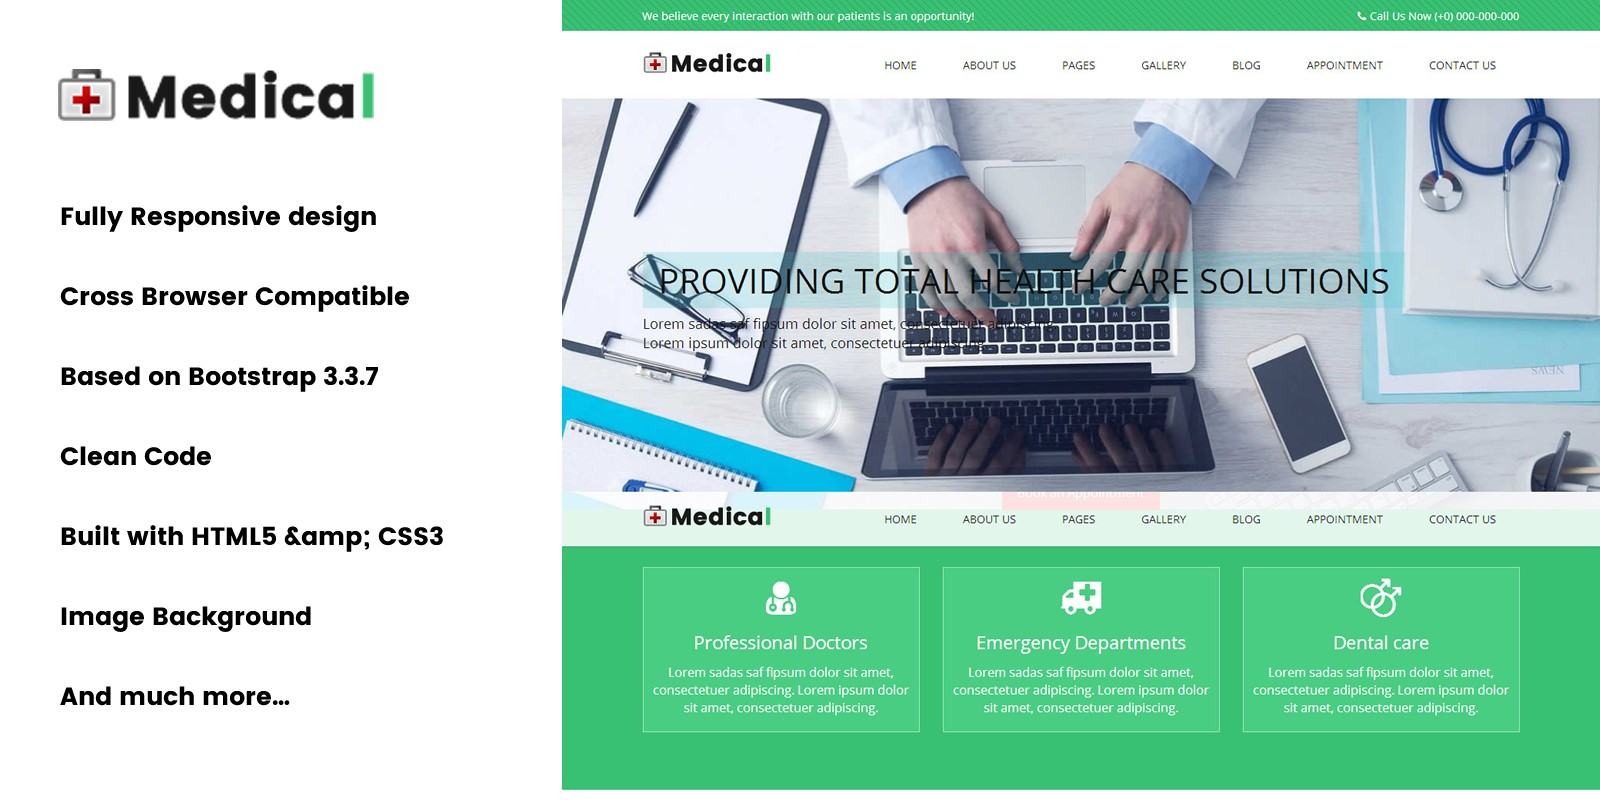 Medical - HTML Web Template - HTML Health & Wellness Website ...